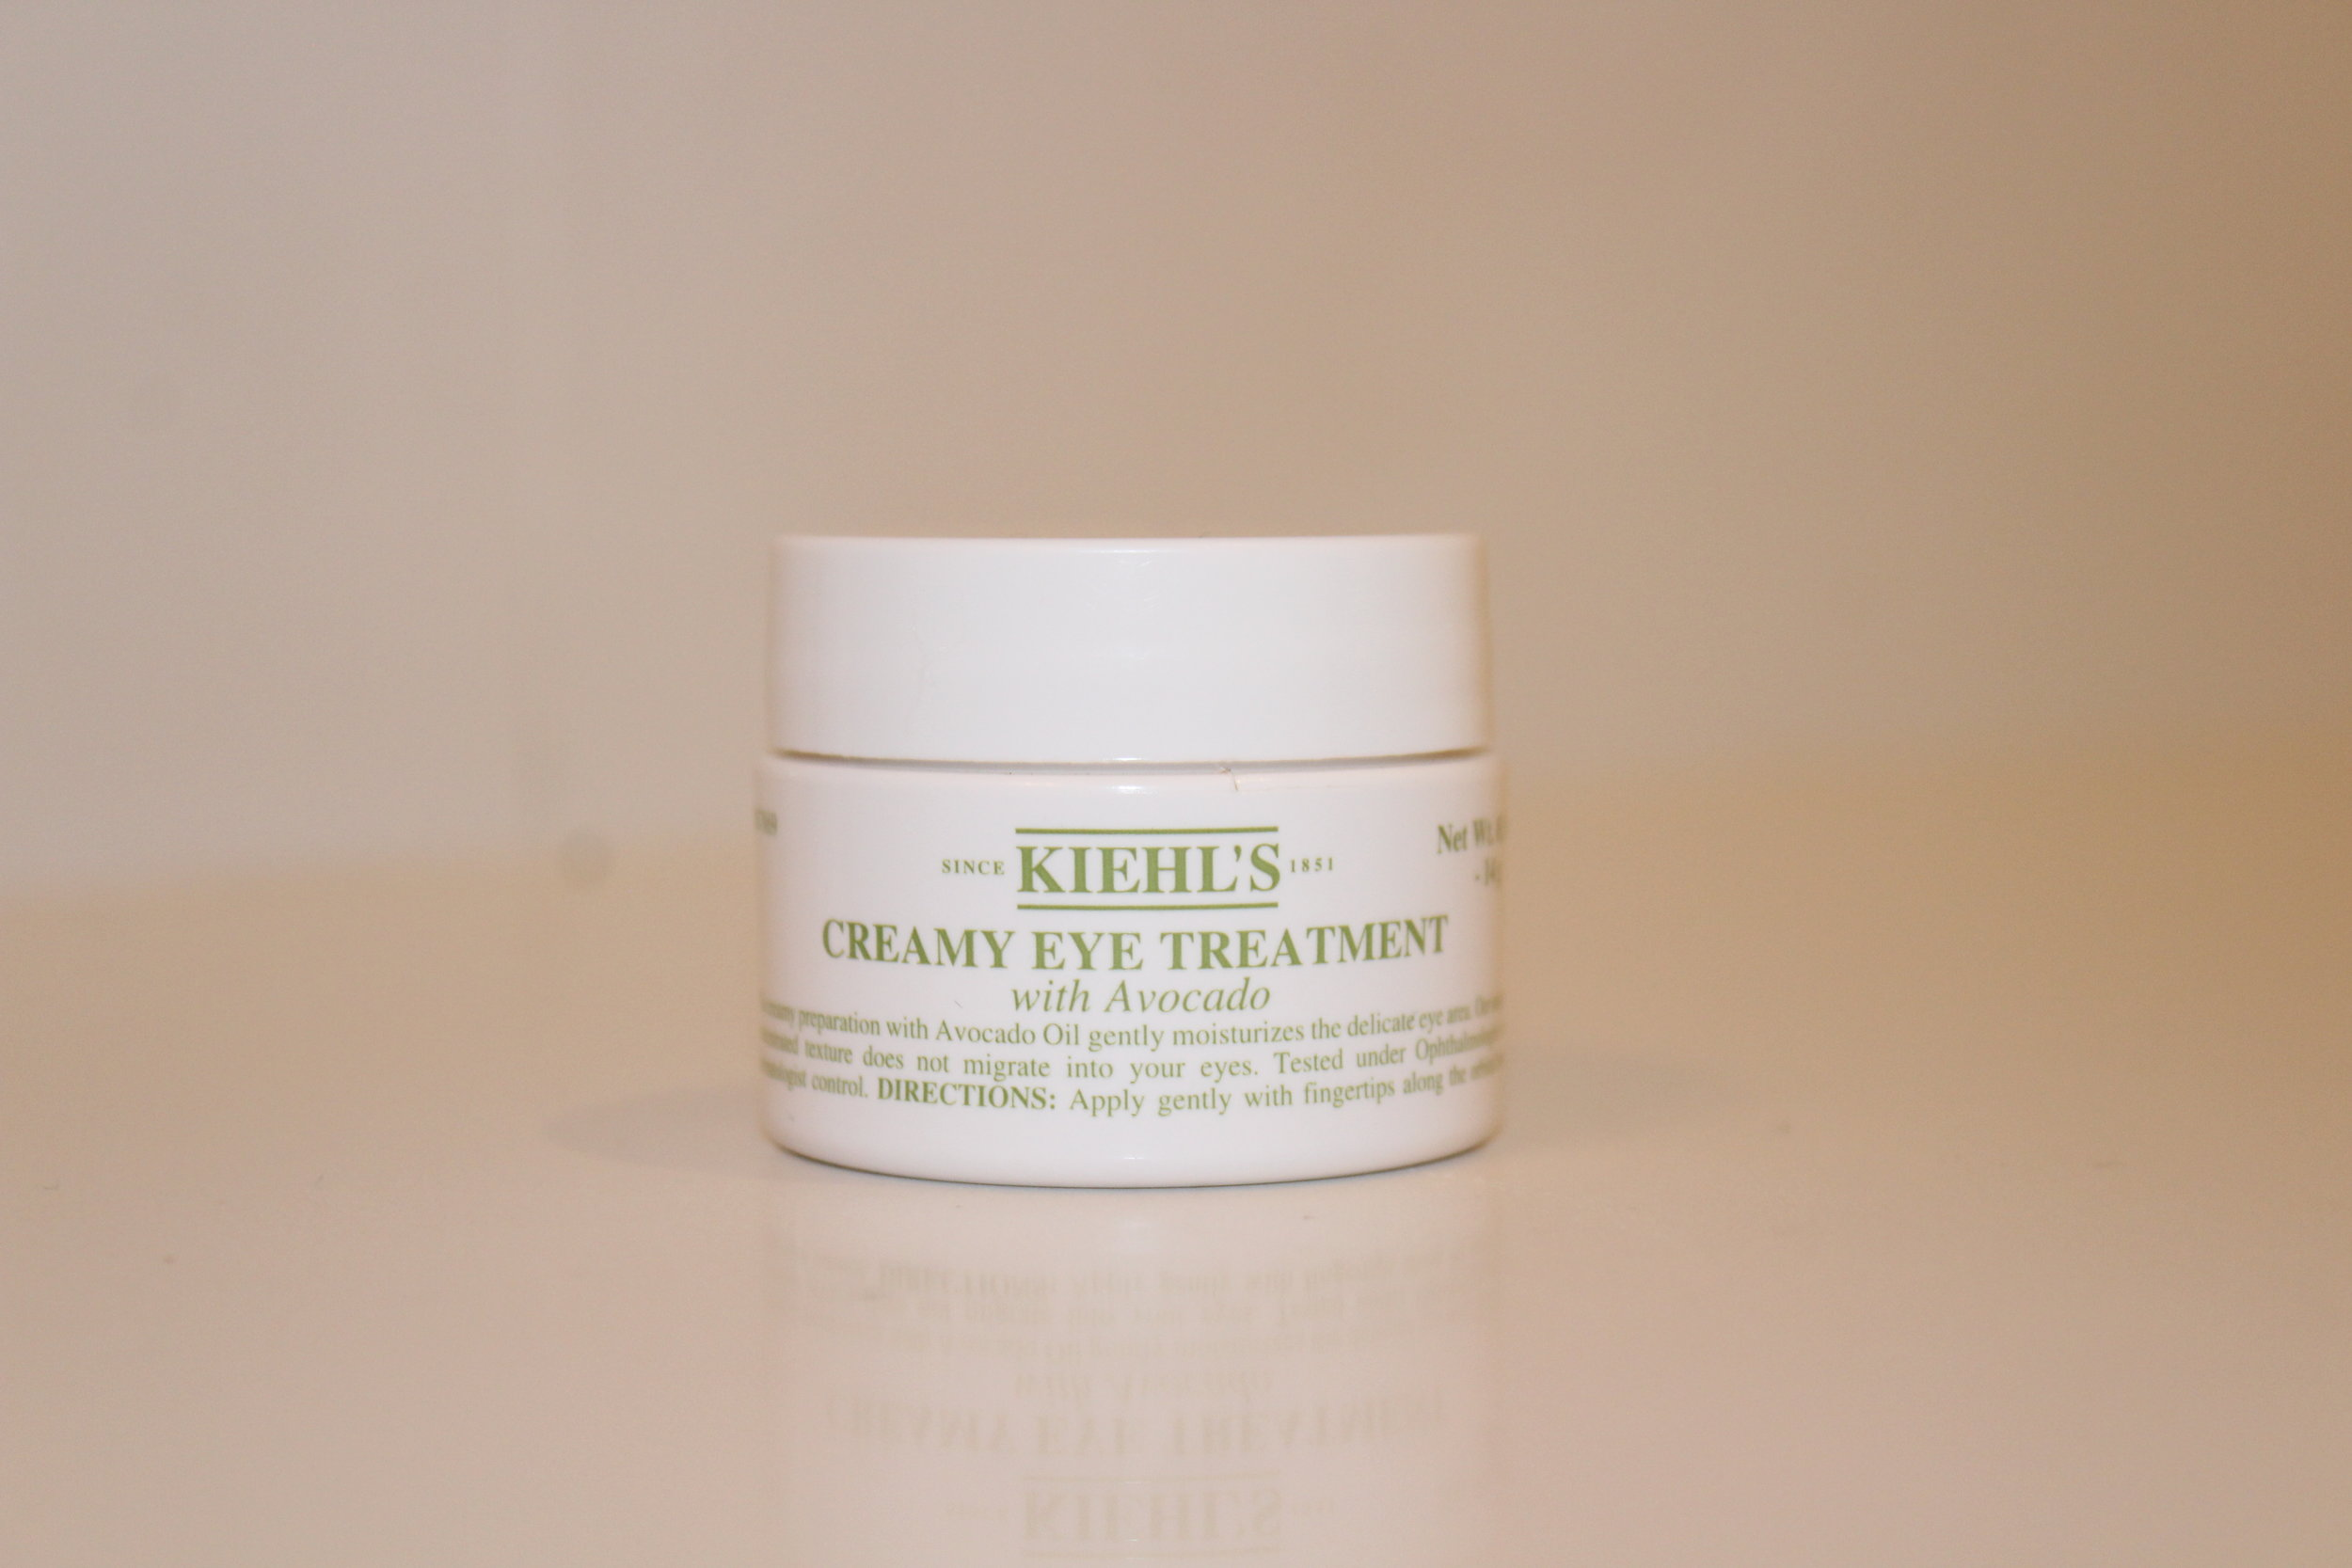 Kiehl's creamy eye treatment - This eye cream is super helpful if you ever have puffy eyes or dark circles. It had avocado and is moisturizing and gentle on your sensitive under-eyes.